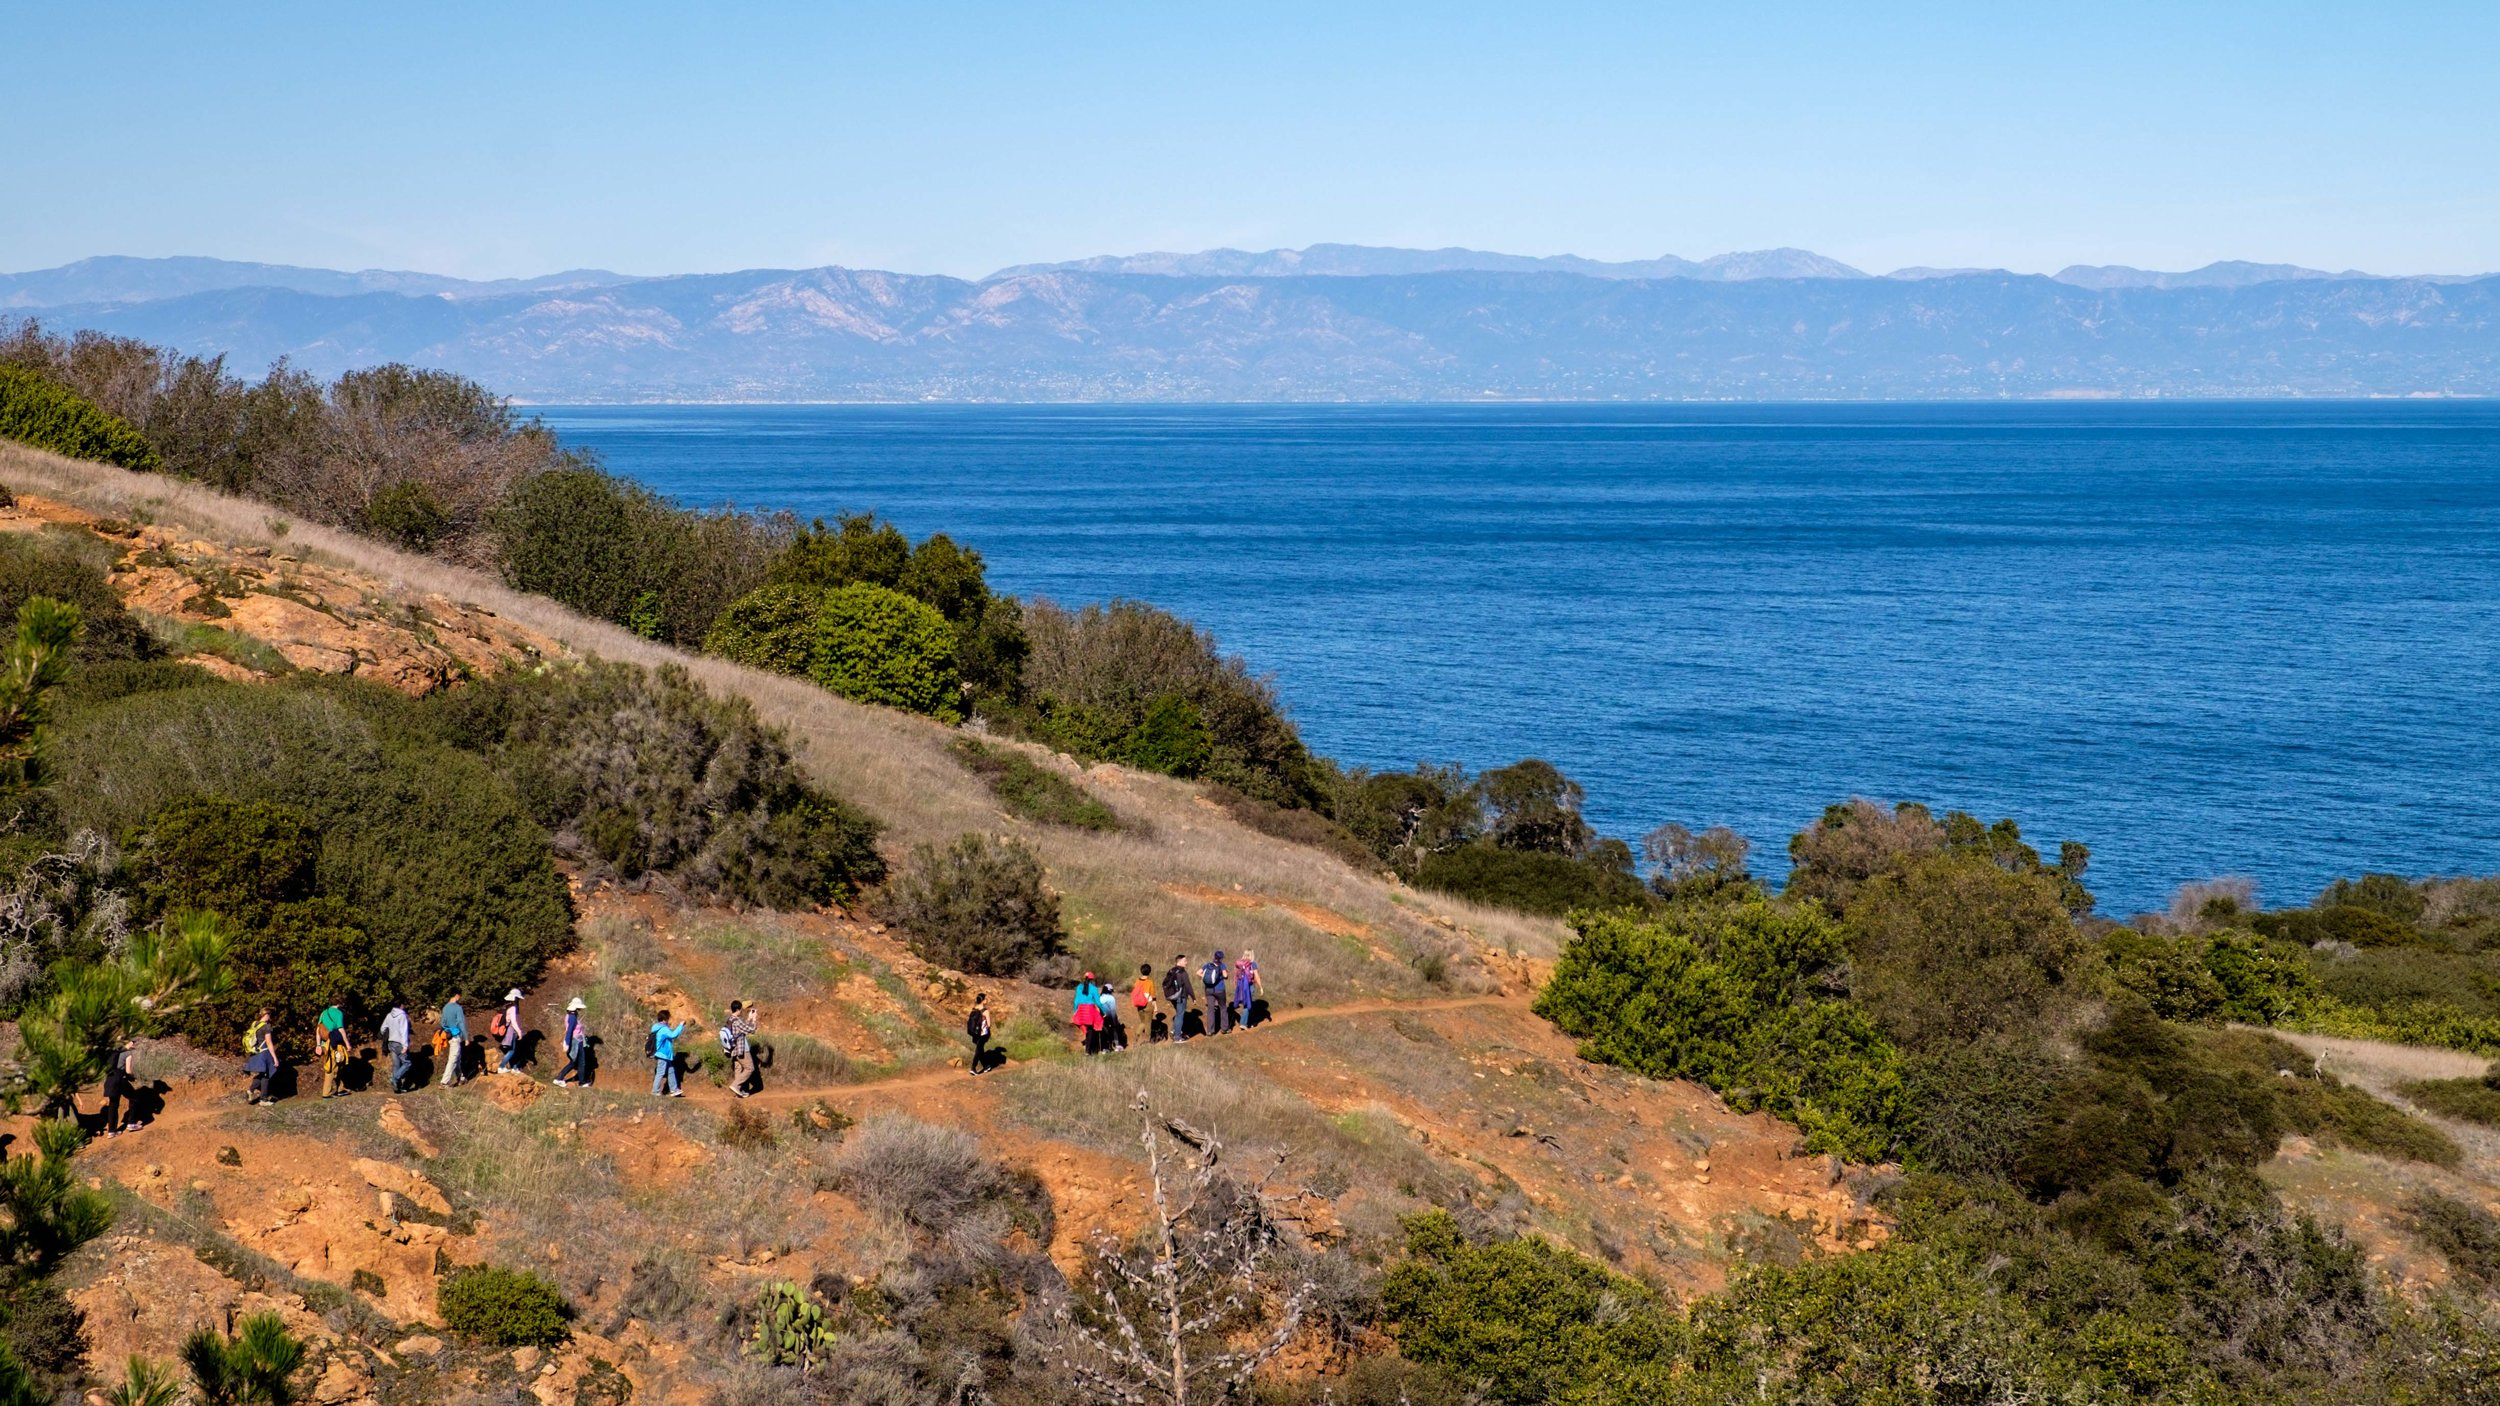 The 4-mile Pelican Bay hike can be explored only by travelers aboard the Island Packers ferry. That's your ticket into the coastal property of The Nature Conservancy. (Guided by Island Packers staff)